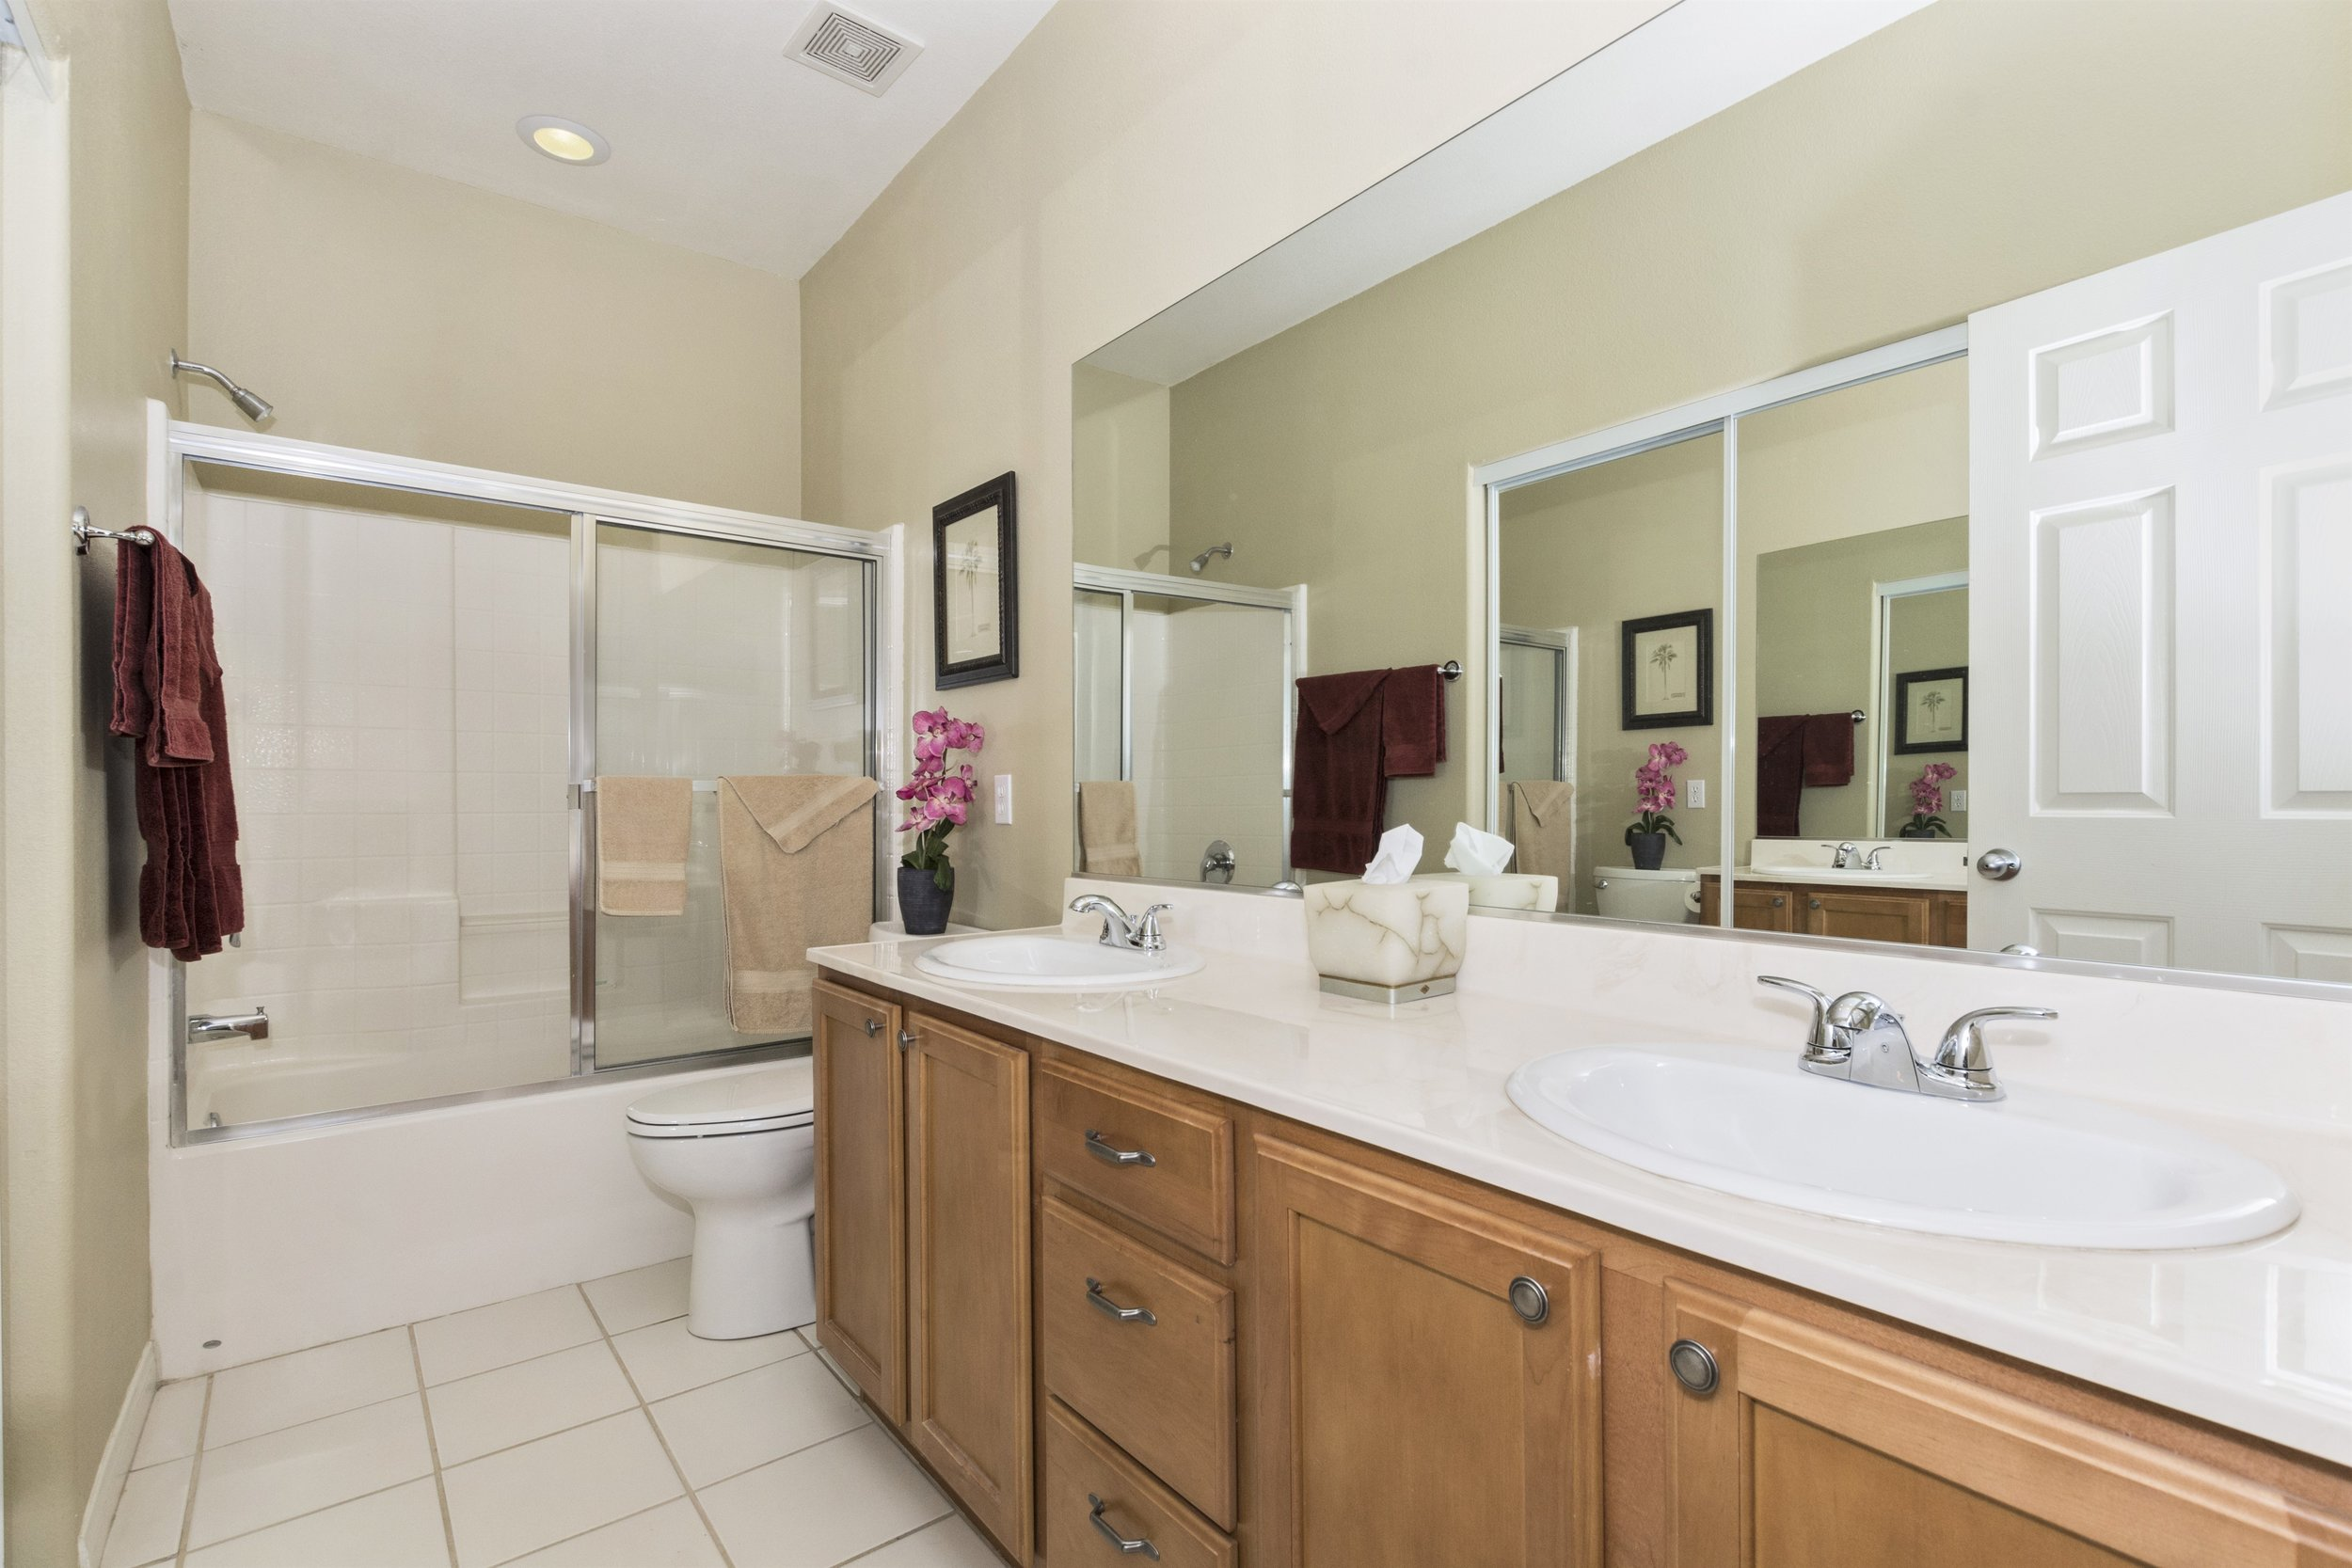 011_Master Bathroom.jpg